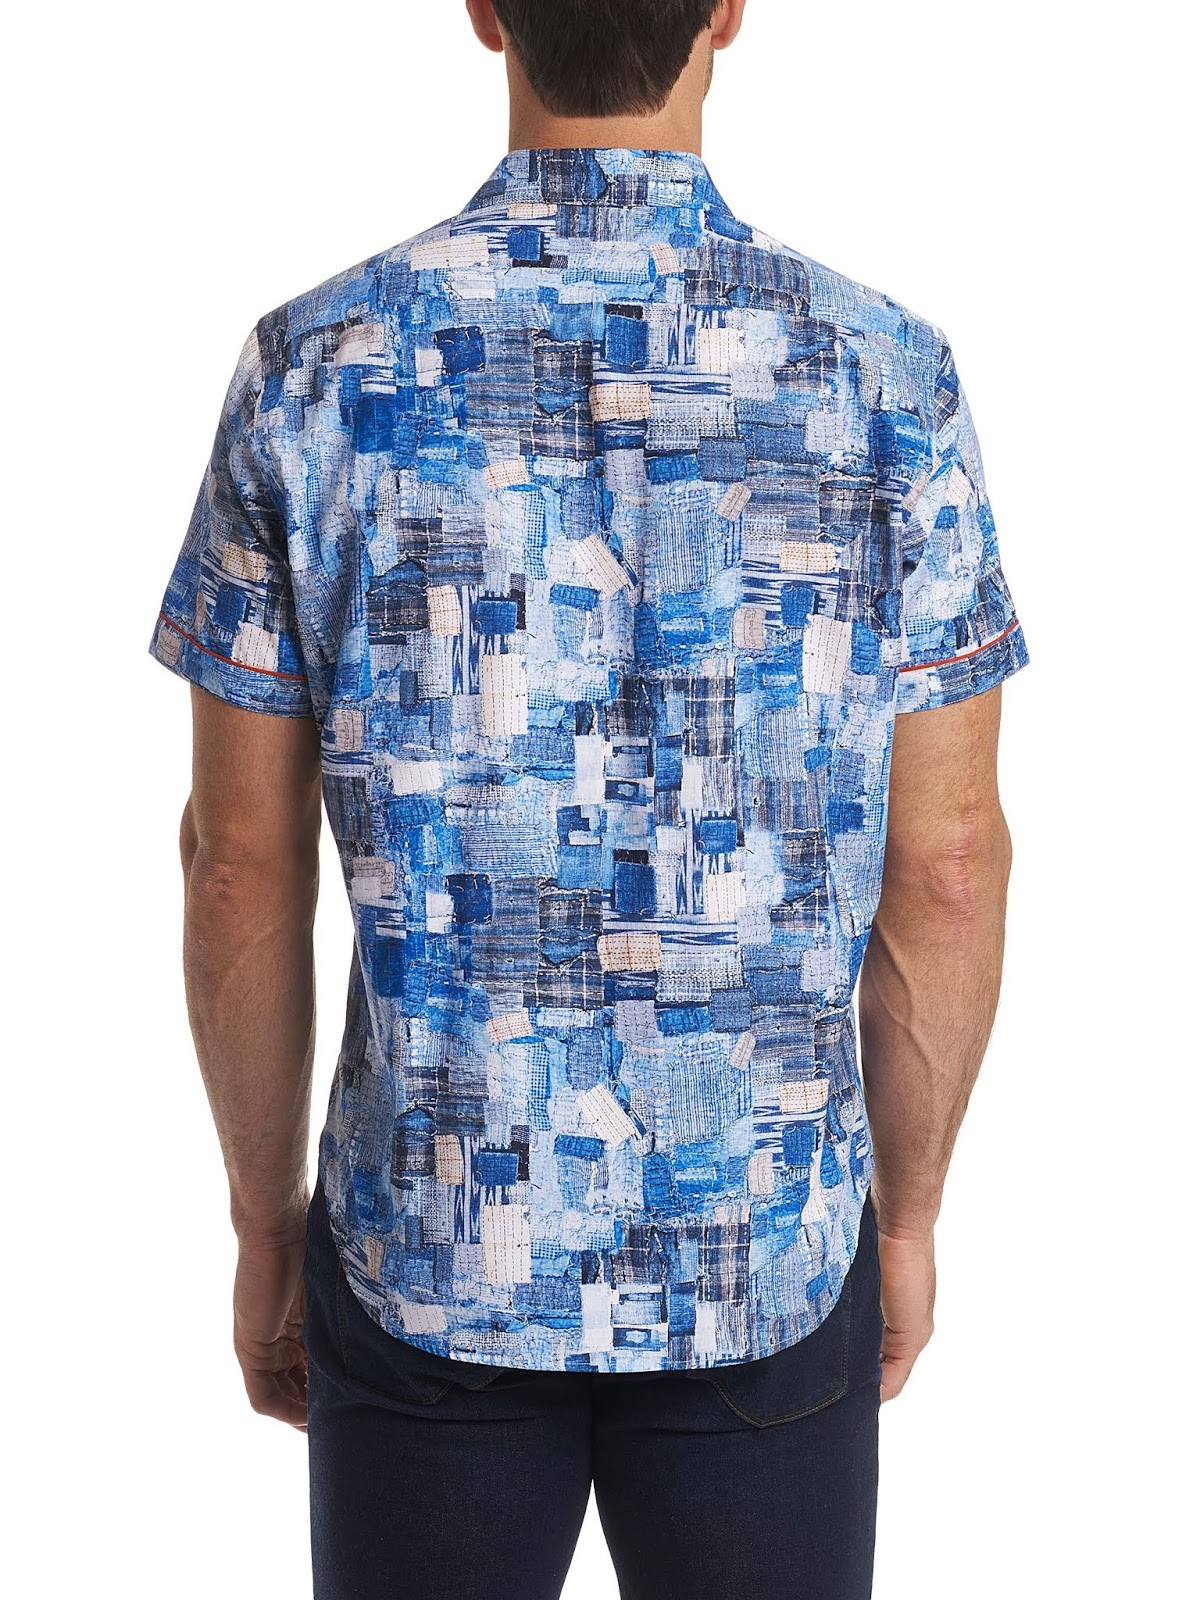 so until i learn all that which is likely never here s a professional manufacturer website pic of a shirt i recently bought at bloomingdale s